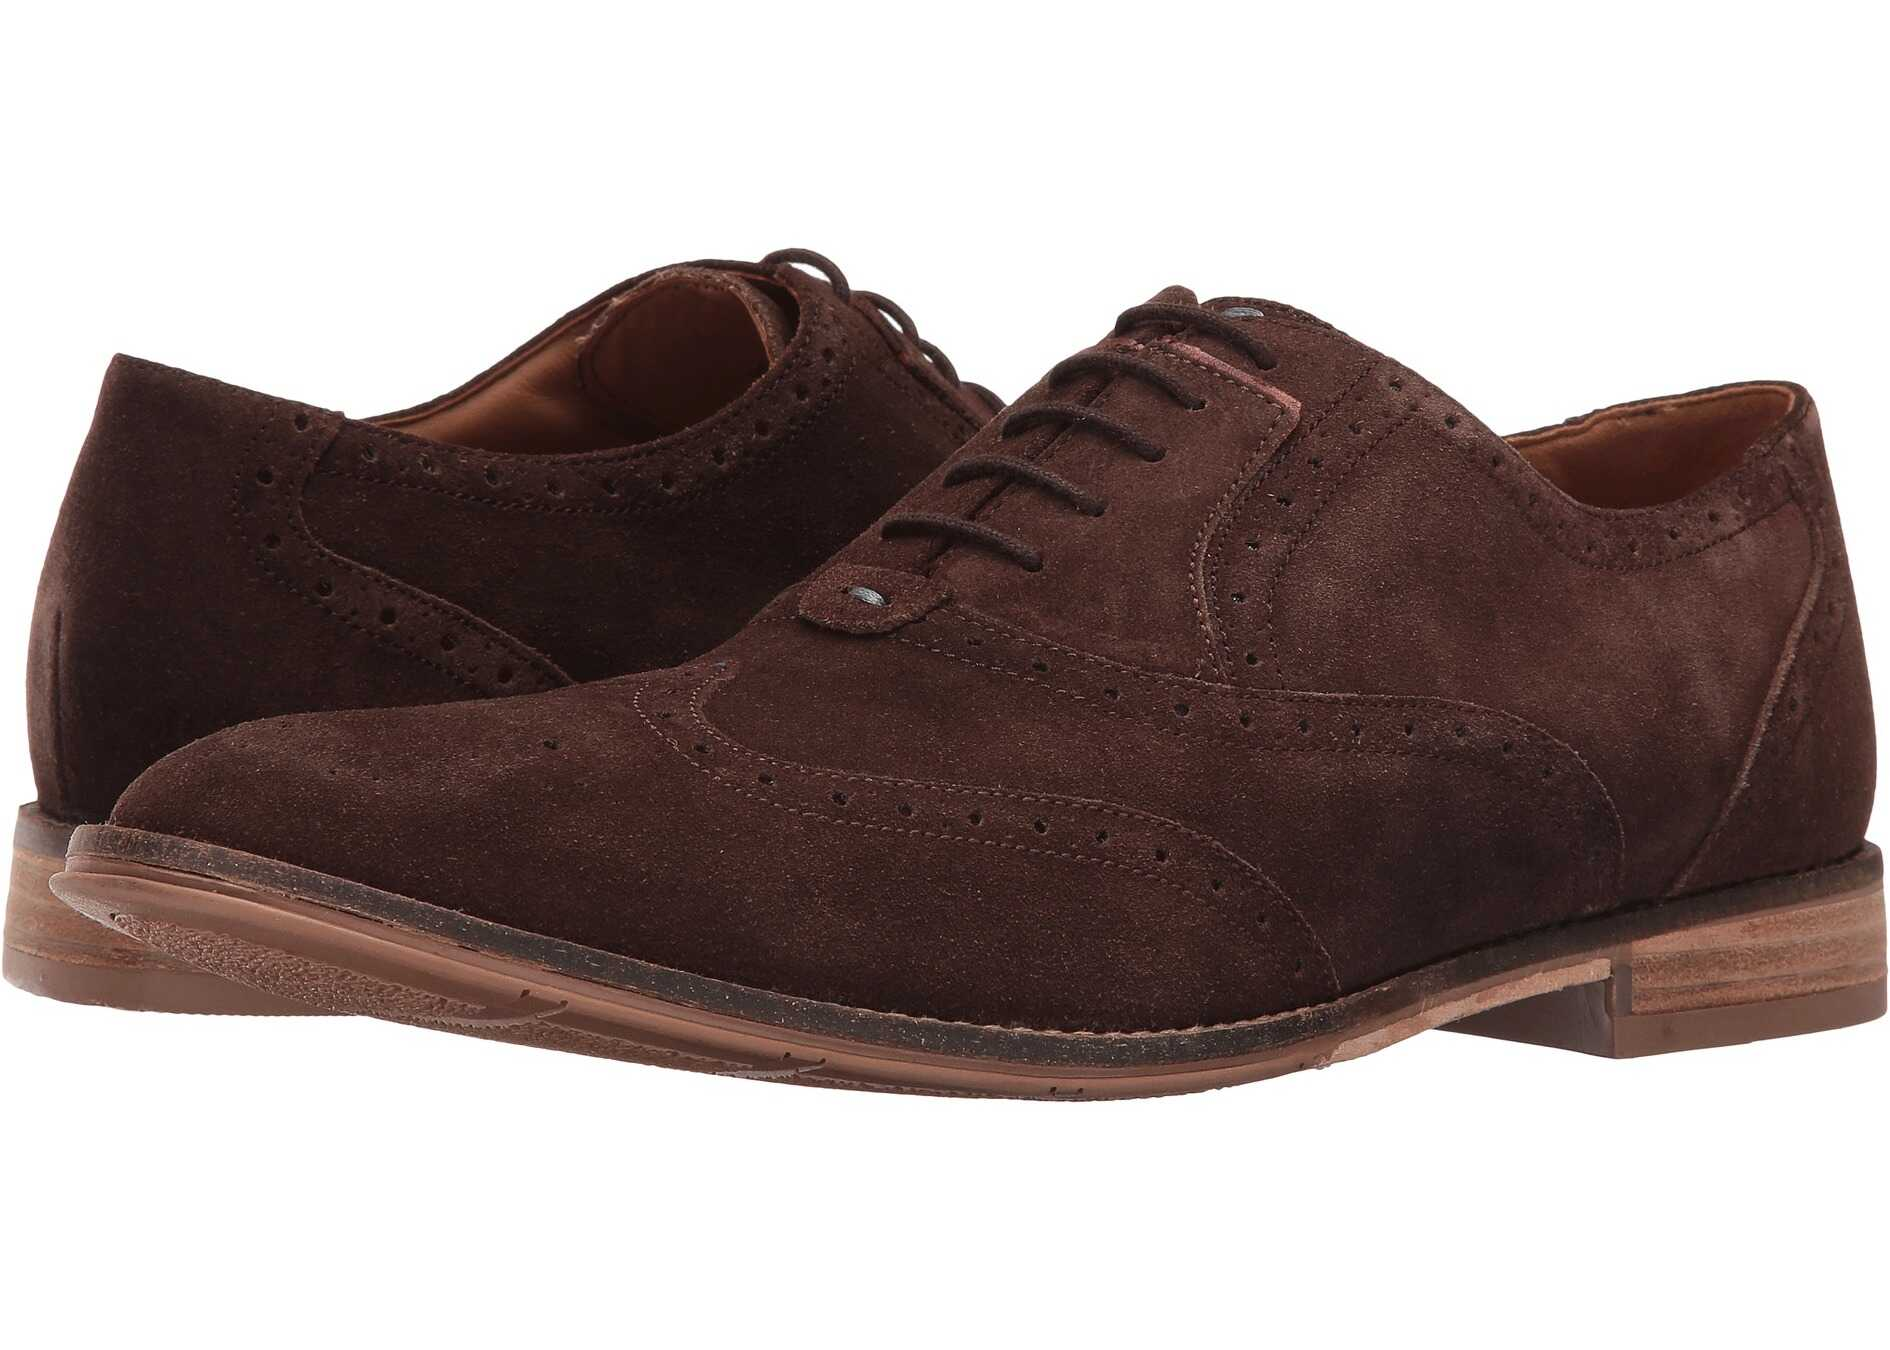 Hush Puppies Style Brogue Dark Brown Suede